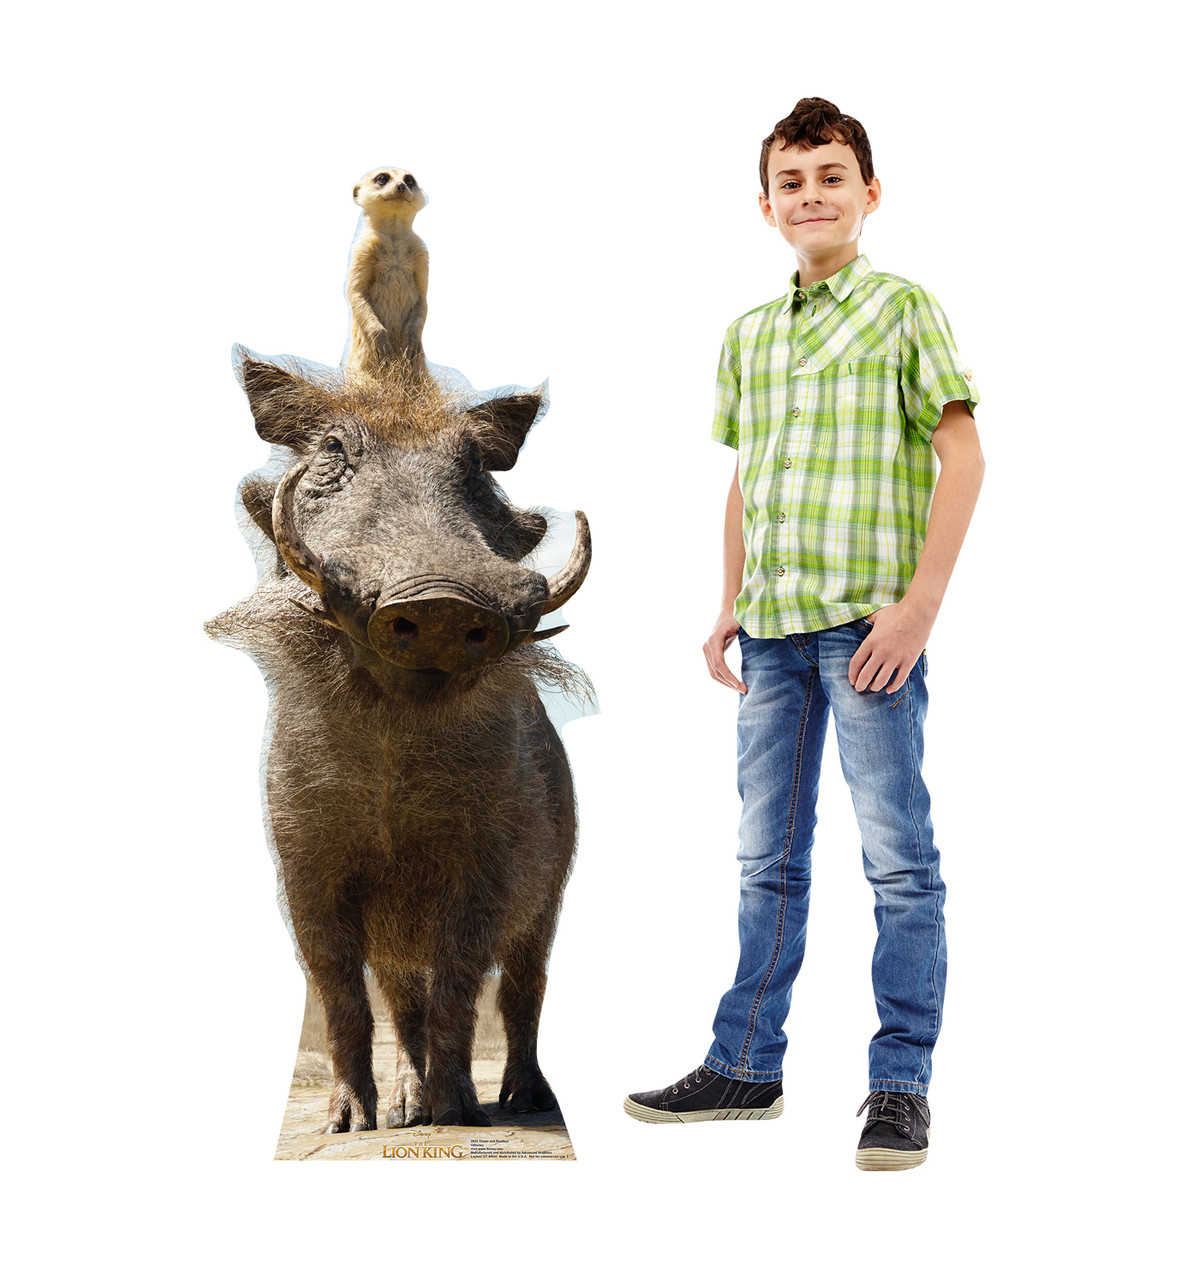 Life-size cardboard standee of Timon and Pumbaa from Disney's live action film The Lion King Lifesize